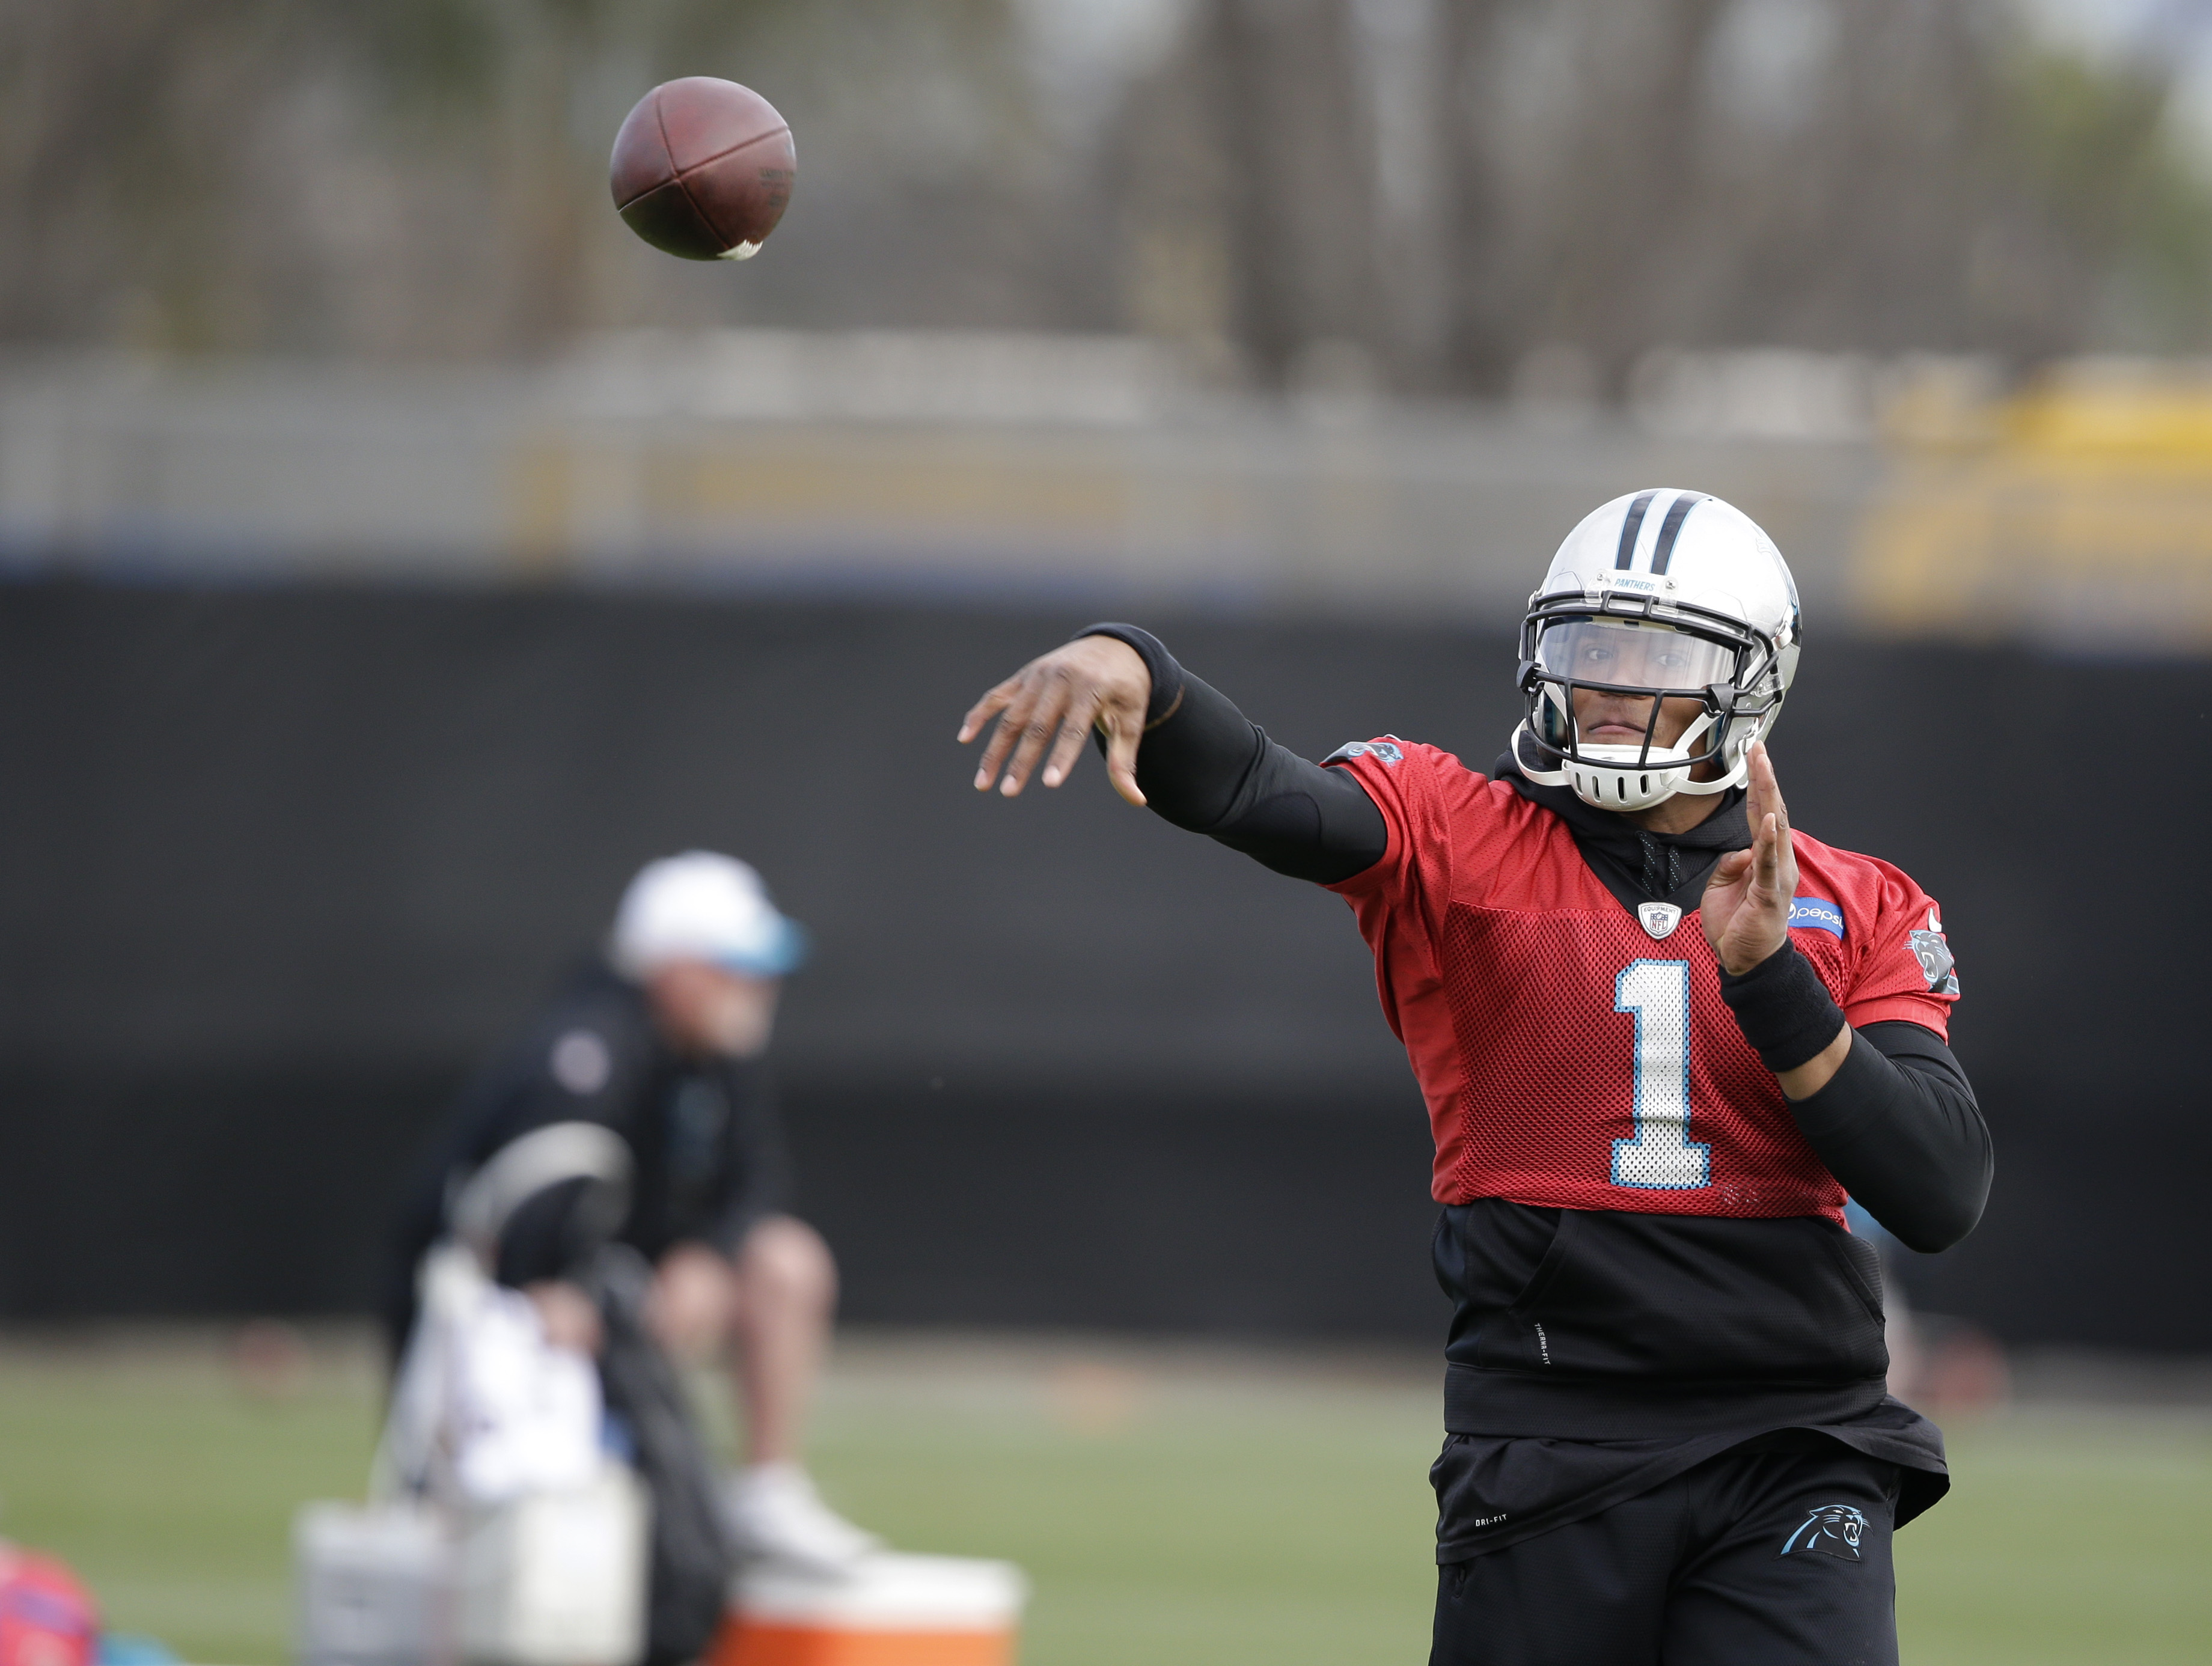 Carolina Panthers quarterback Cam Newton (1) throws during practice Wednesday, Feb. 3, 2016 in San Jose, Calif. Carolina plays the Denver Broncos in the NFL Super Bowl 50 football game Sunday, Feb. 7, 2015, in Santa Clara, Calif. (AP Photo/Marcio Jose San